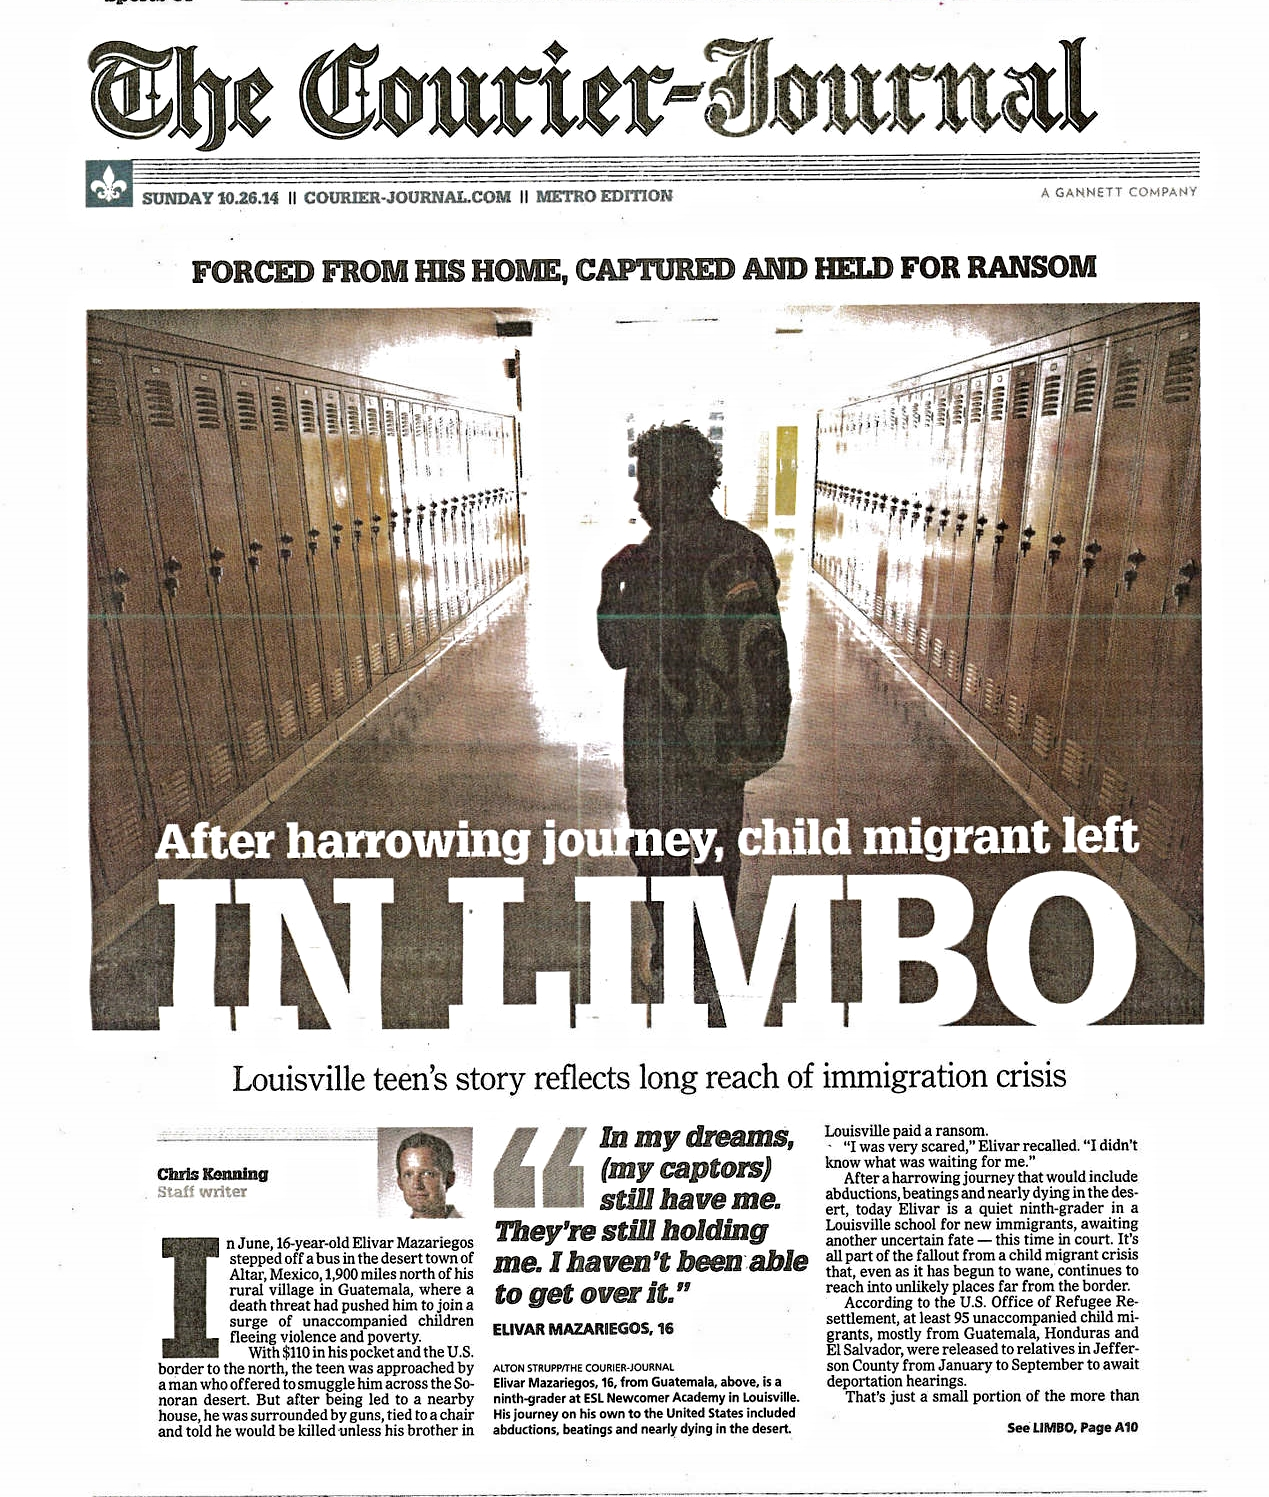 http://www.courier-journal.com/story/news/local/2014/10/24/harrowing-journey-louisville-teen-immigration-limbo/17801565/